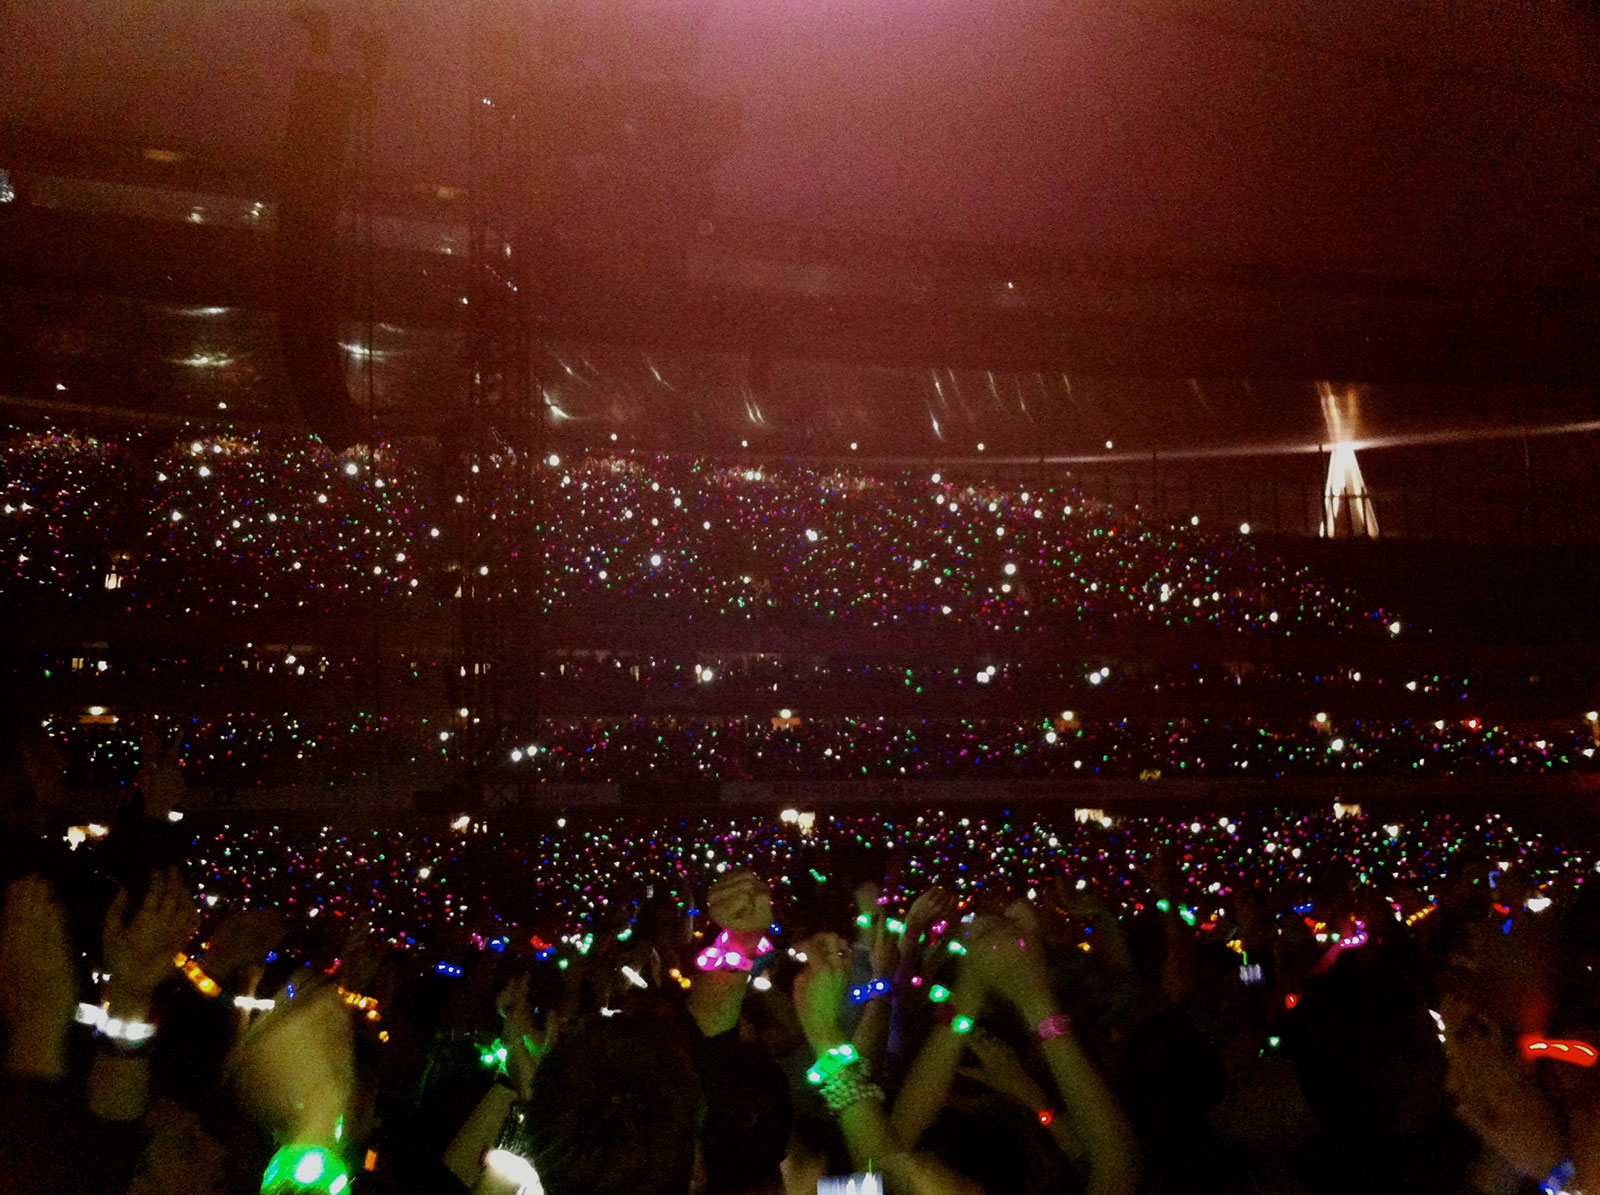 Coldplay's wristband lights